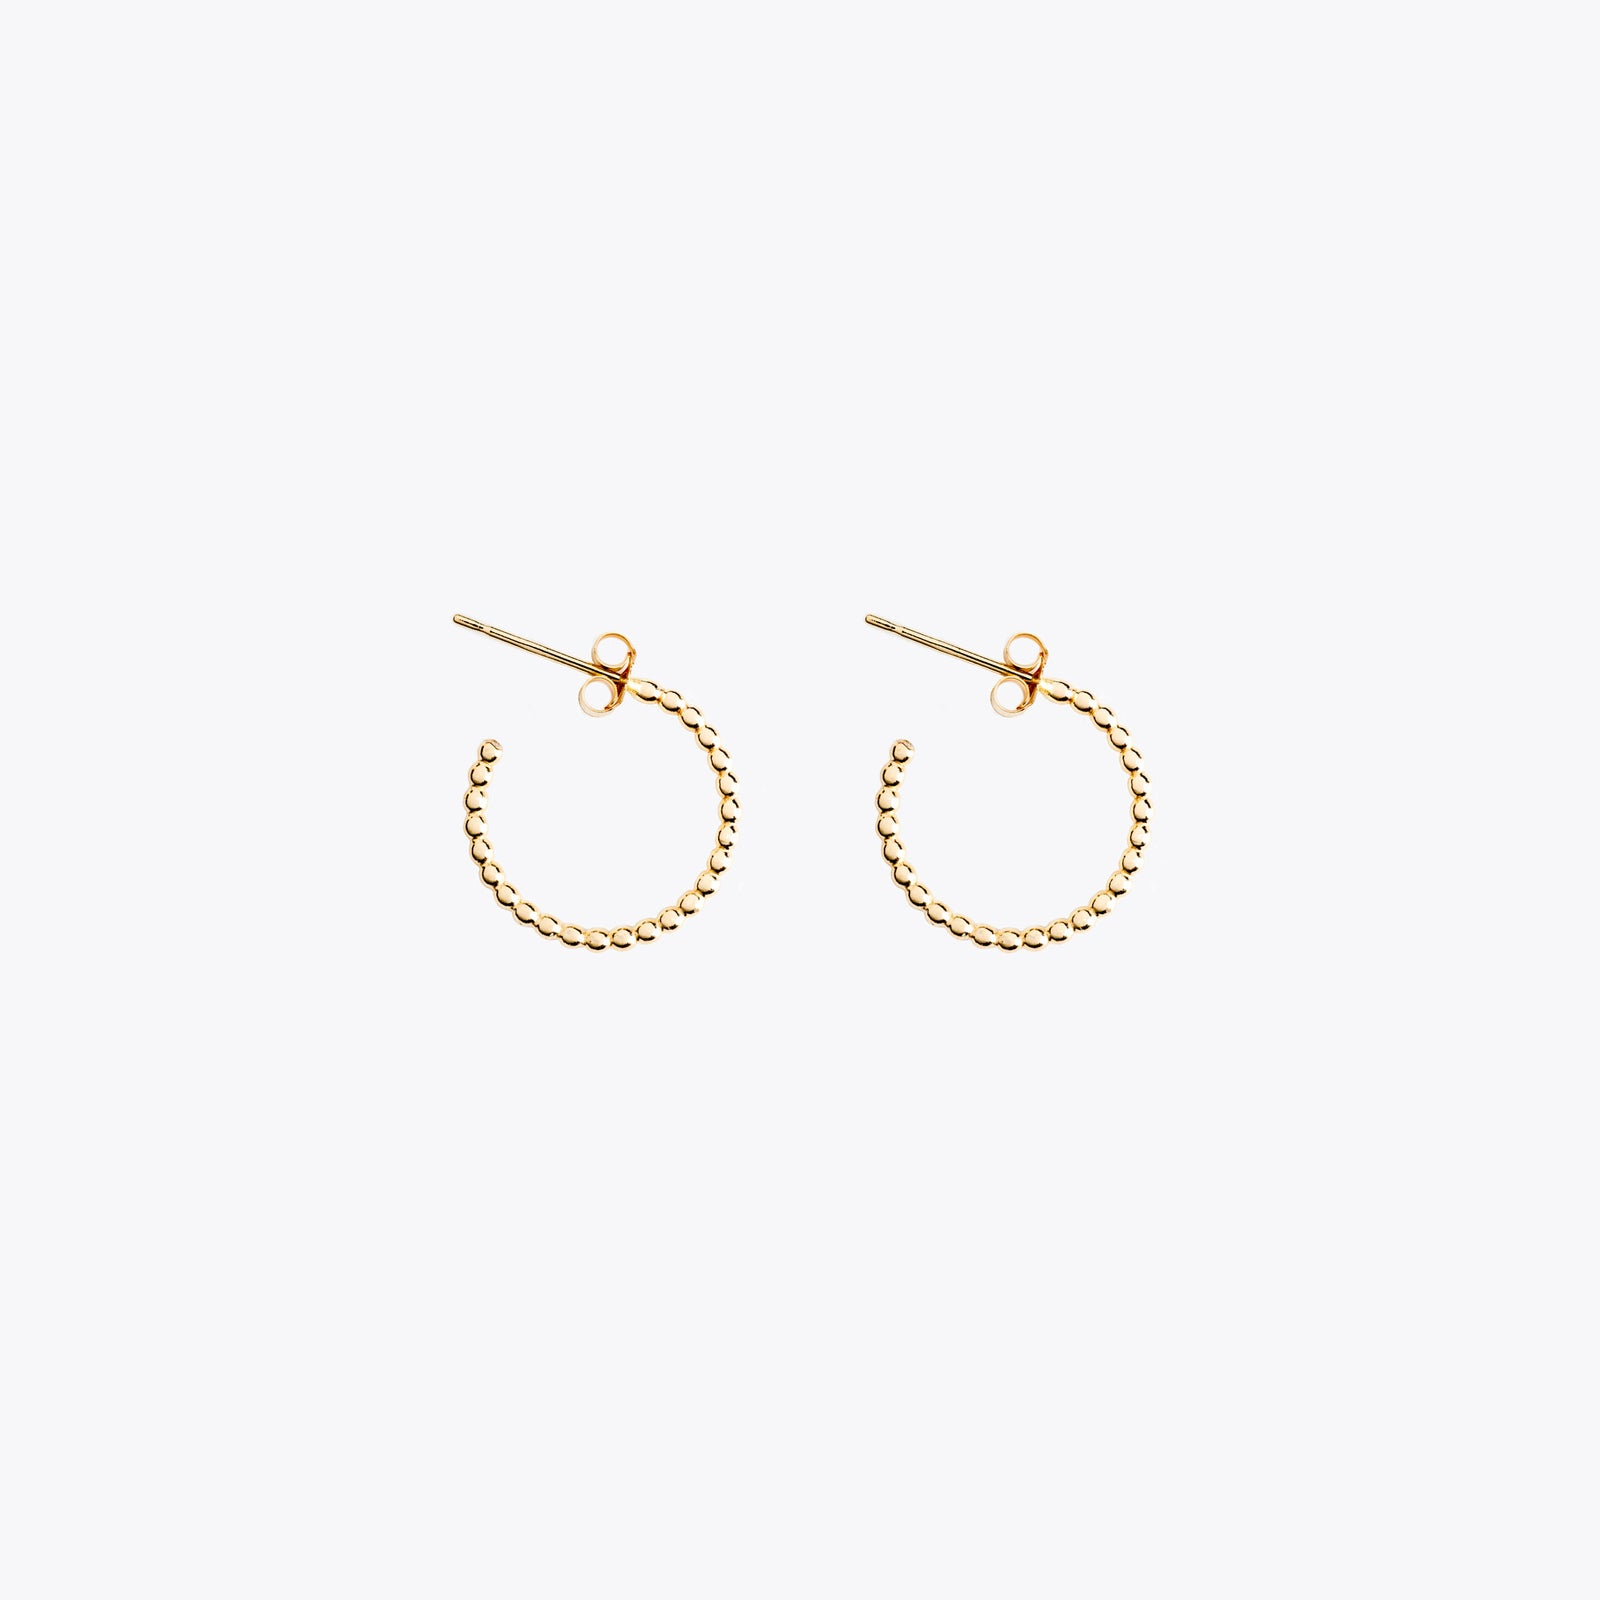 Wanderlust Life Ethically Handmade jewellery made in the UK. Minimalist gold and fine cord jewellery. solstice, petite gold hoop